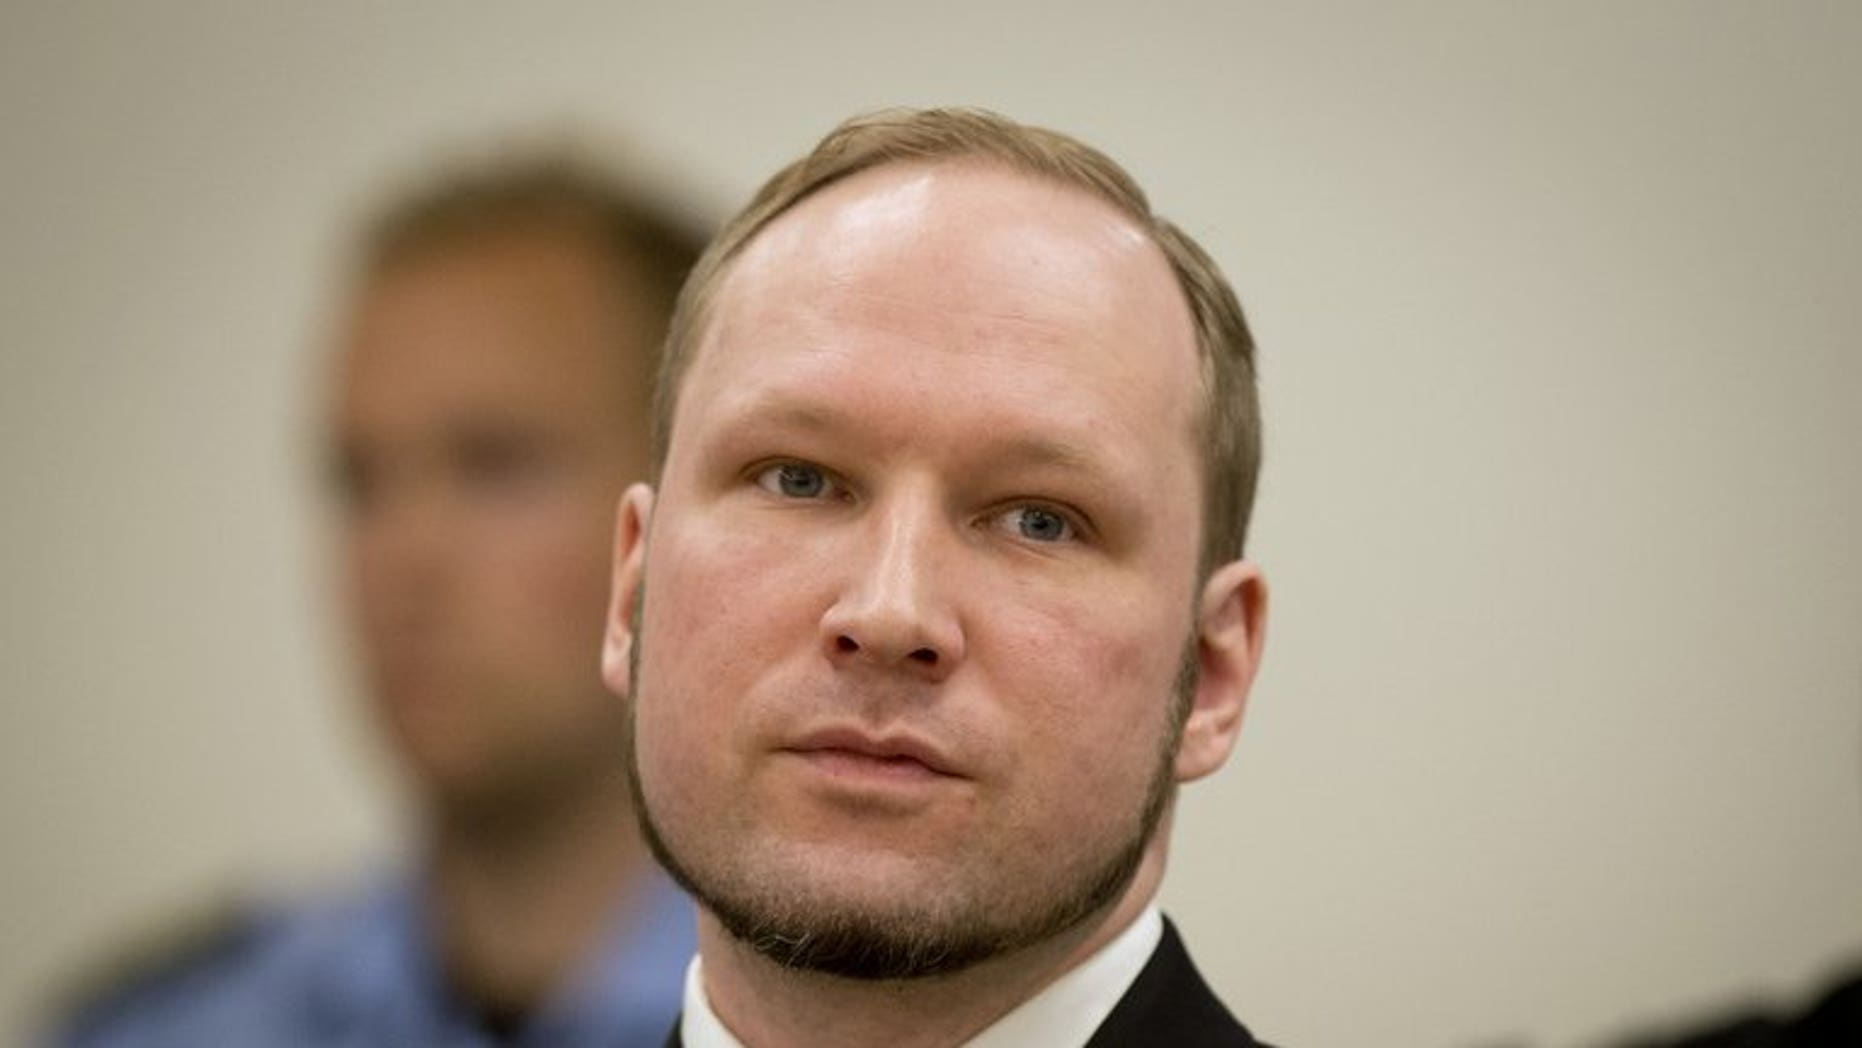 Norwegian mass murderer Anders Behring Breivik arrives in court for his sentencing in Oslo, on August 24, 2012. The Norwegian prison where Breivik is being held has agreed in principle to allow the convicted mass murderer to study political science, if the university wants him.